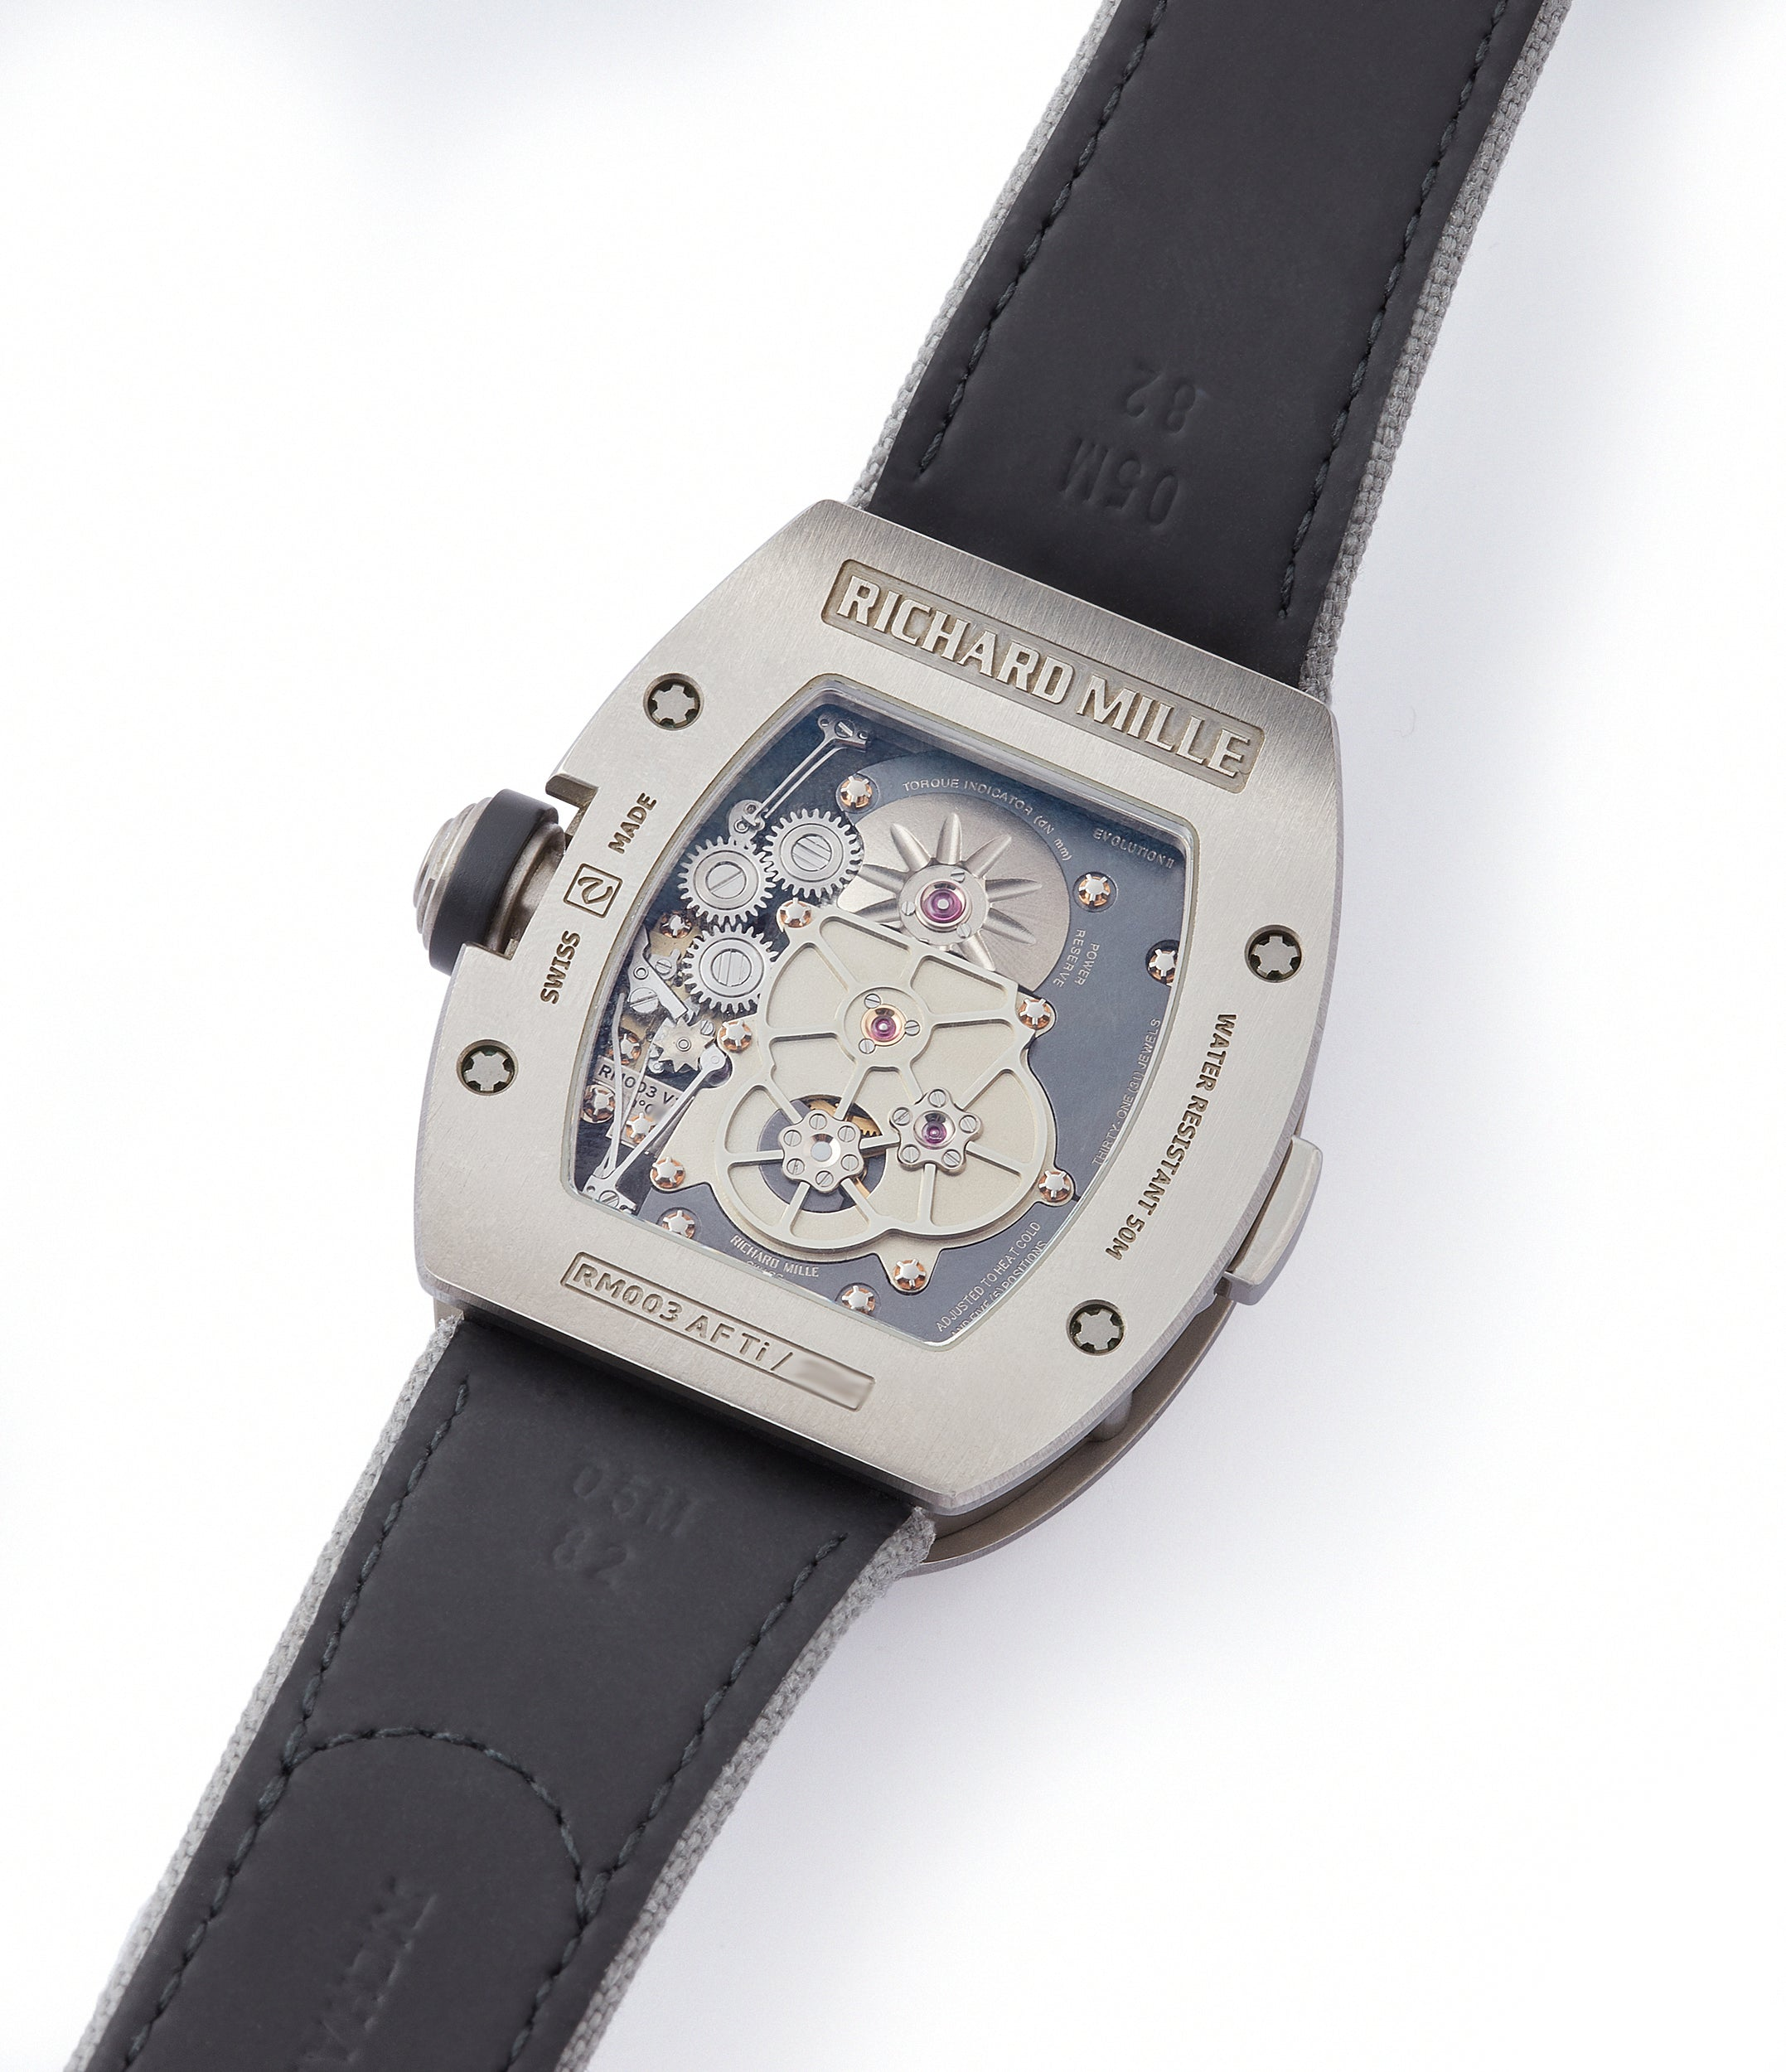 manual-winding RM003-V2 movement Richard Mille titanium tourbillon dual-time pre-owned rare independent watchmaker sports traveller watch for sale online at A Collected Man London UK specialist of rare watches